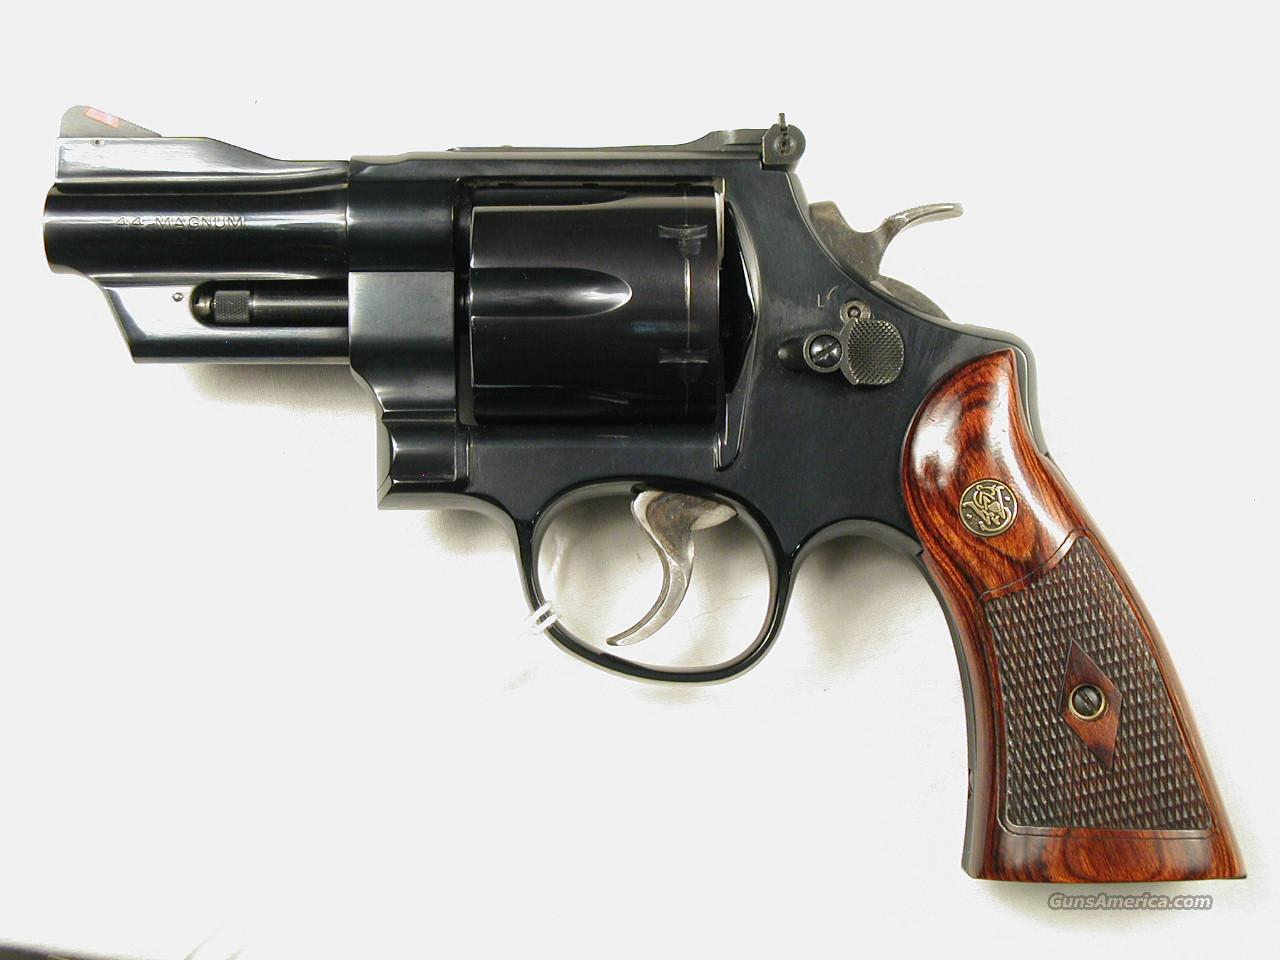 SMITH & WESSON M 29 3 INCH  Guns > Pistols > Smith & Wesson Revolvers > Full Frame Revolver